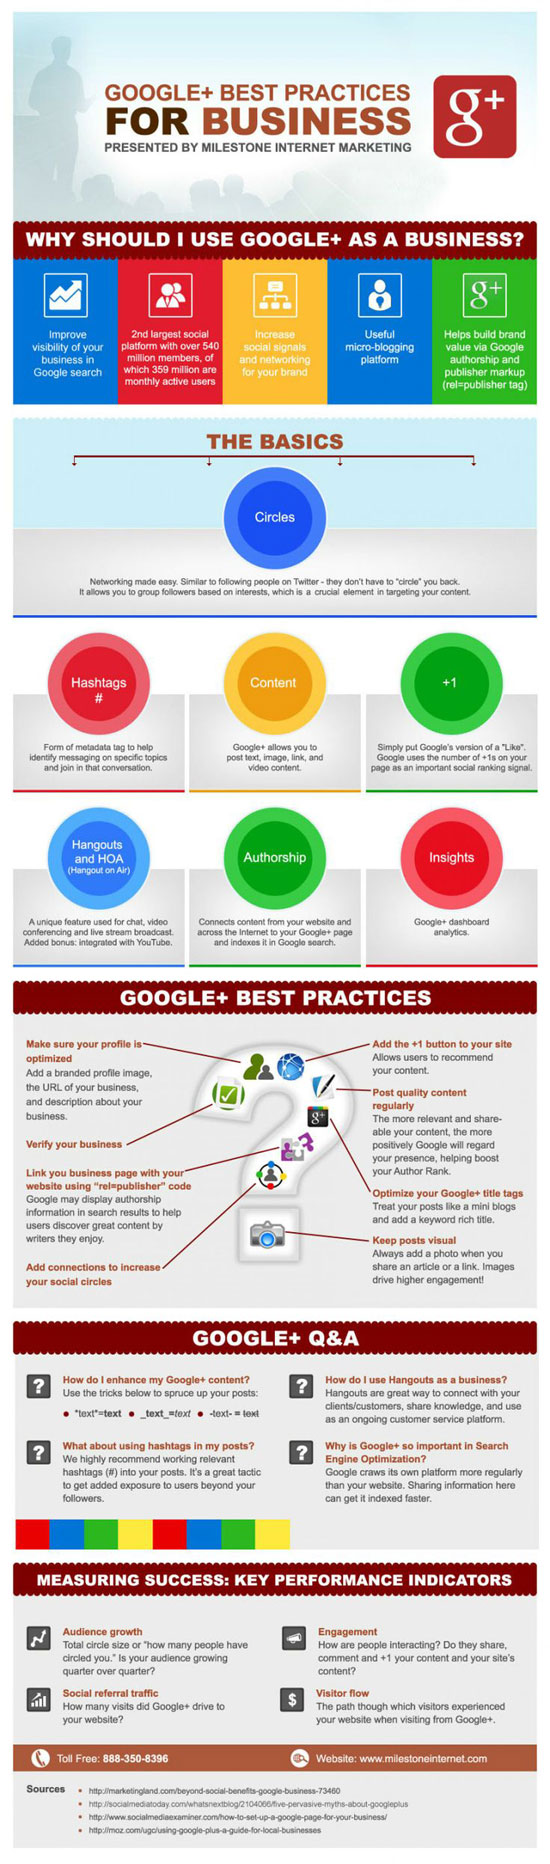 Google+ for Business Tips